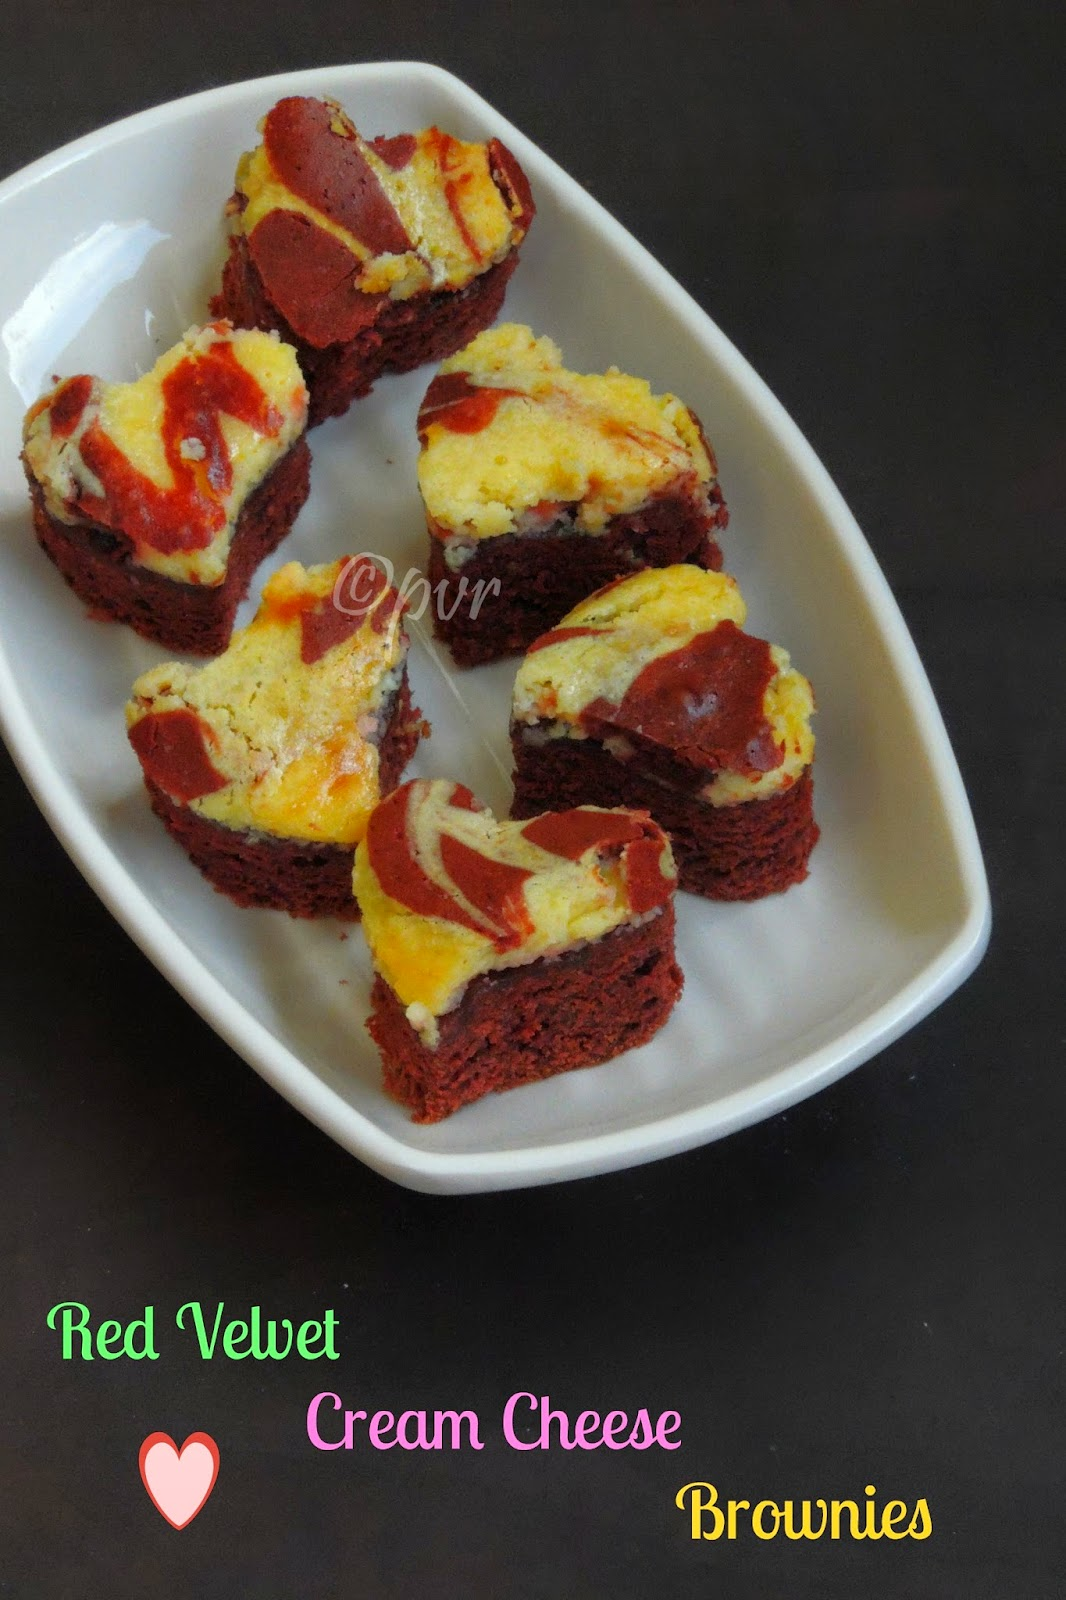 Red Velvet Creamcheese Brownies